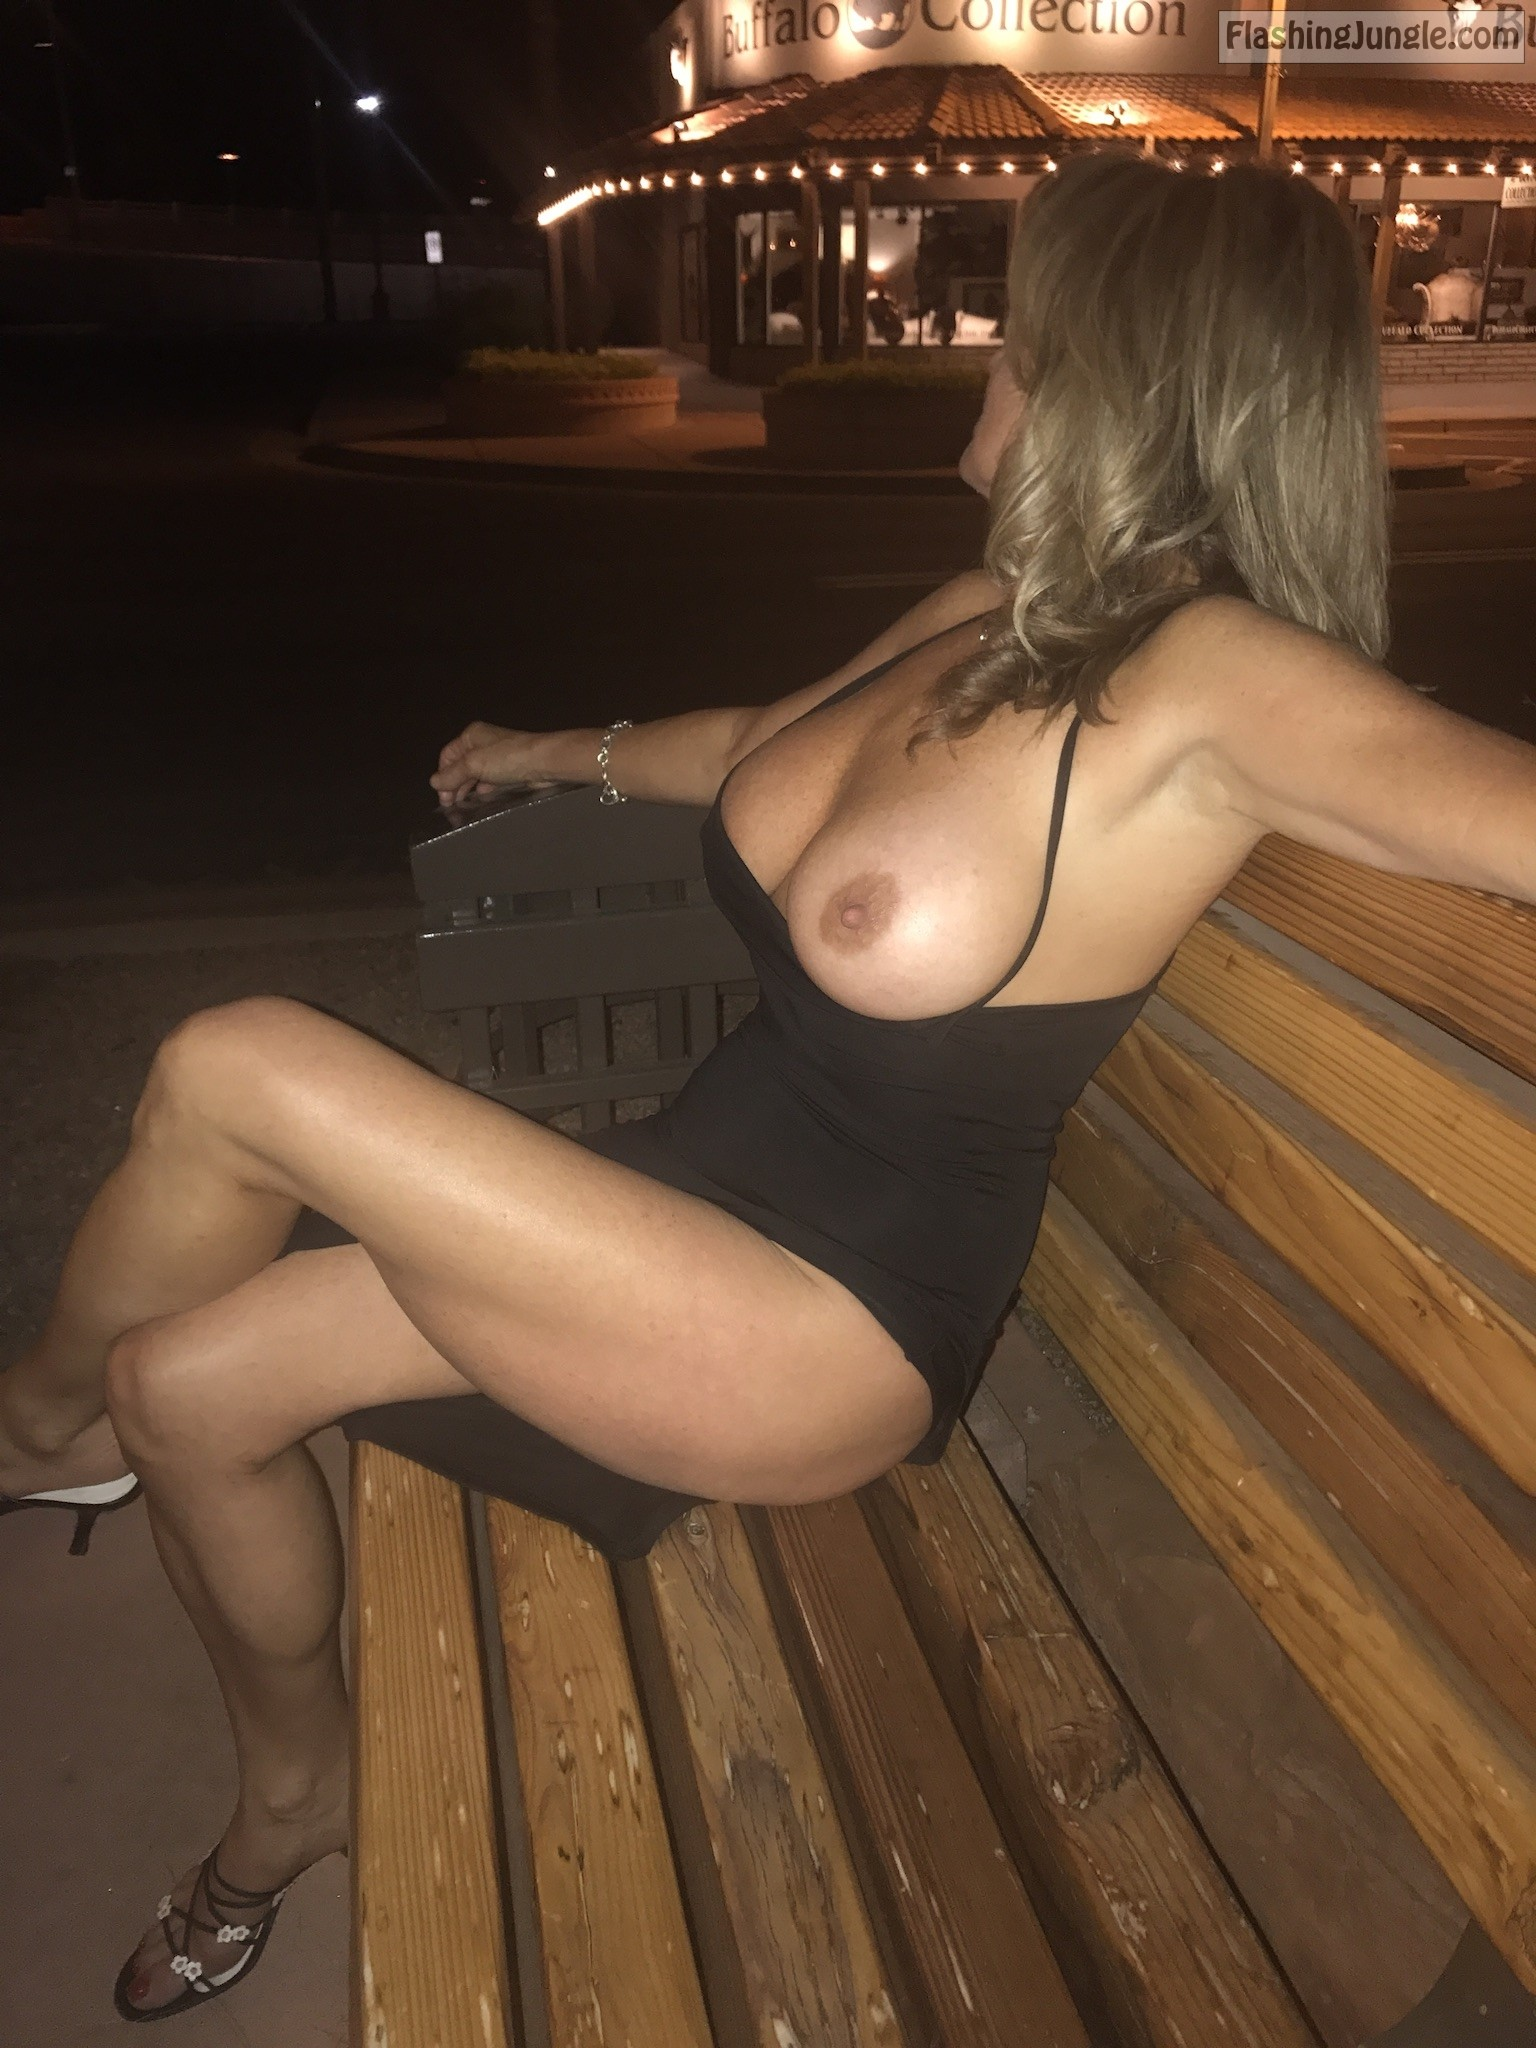 Johns Sexy Wife Flashing Boobs Outdoors Boobs Flash Pics -5519